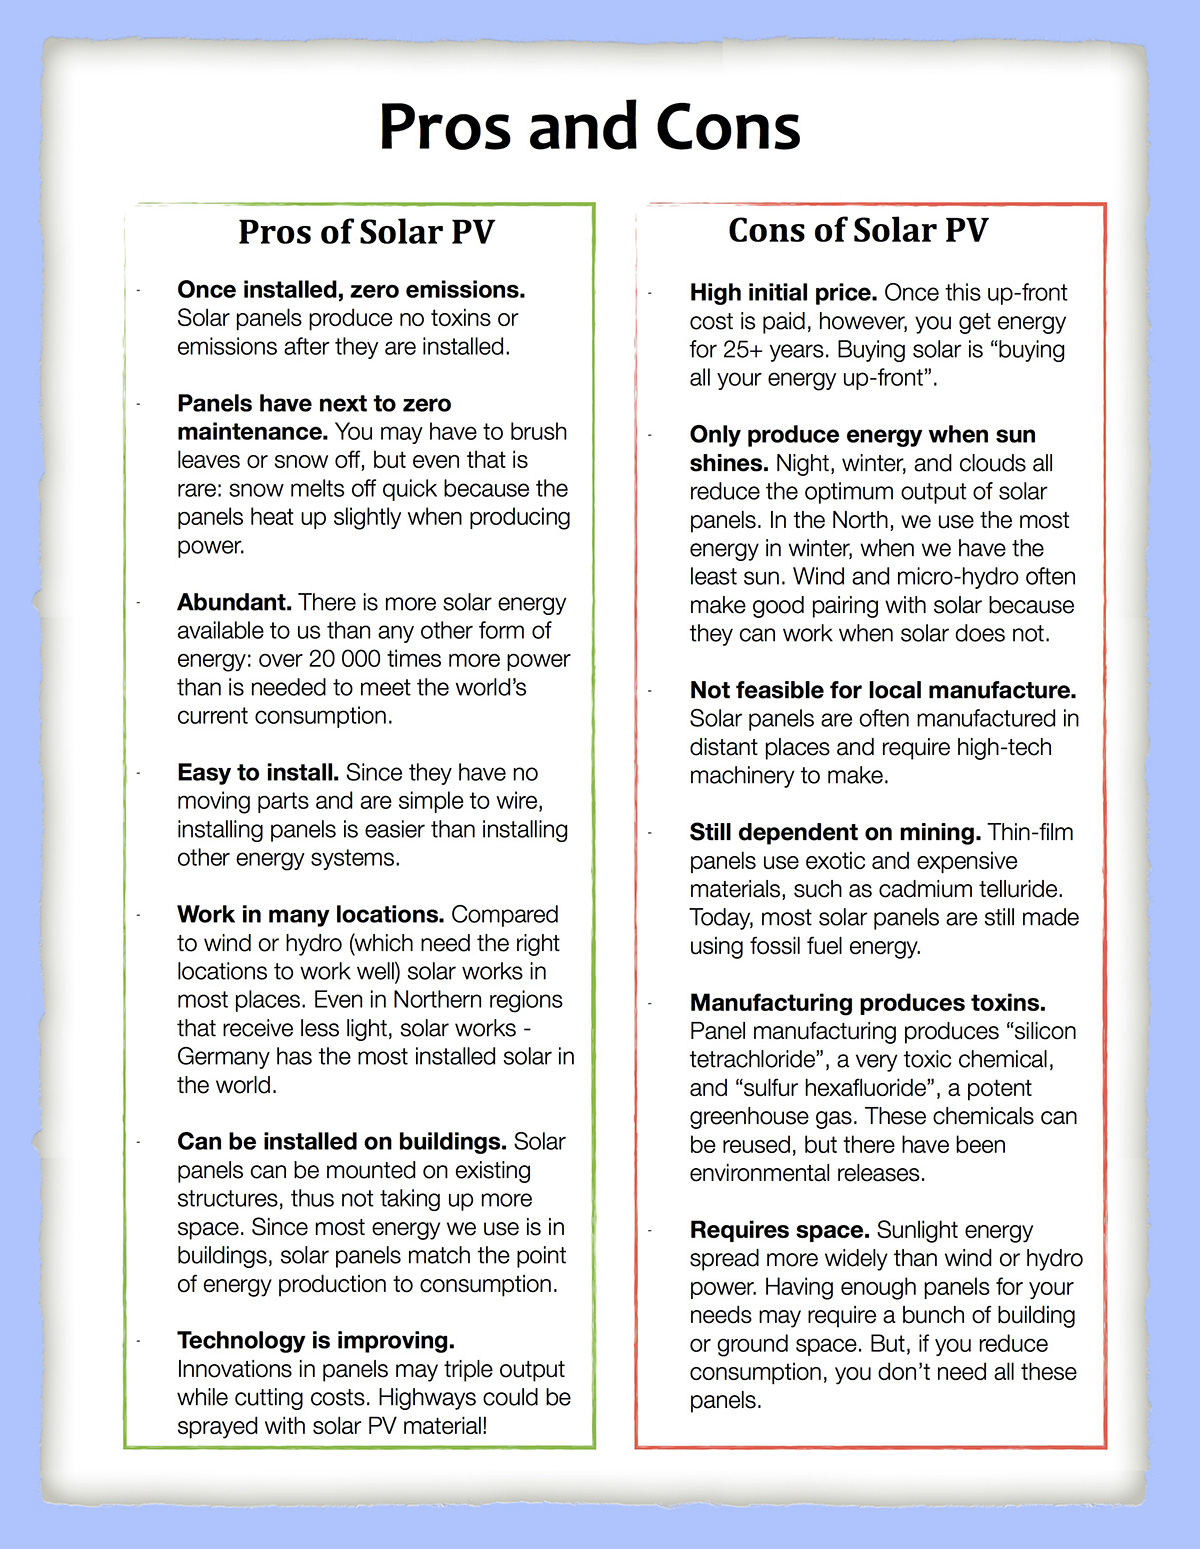 006 Solarposter6 Essay Example Writing Pros And Fascinating Cons Explain How To Write An About The Of A Job Full